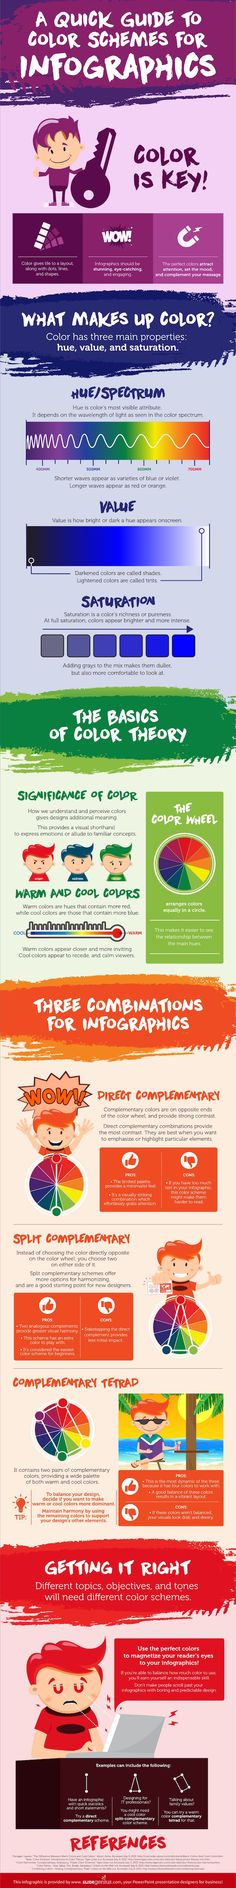 Psychology : A Quick Guide To Color Schemes For Infographics Visualistan: Split Complementary, Make Color, Data Visualization, Color Theory, Marketing Digital, Color Schemes, Color Combinations, Graphic Design, Logo Design